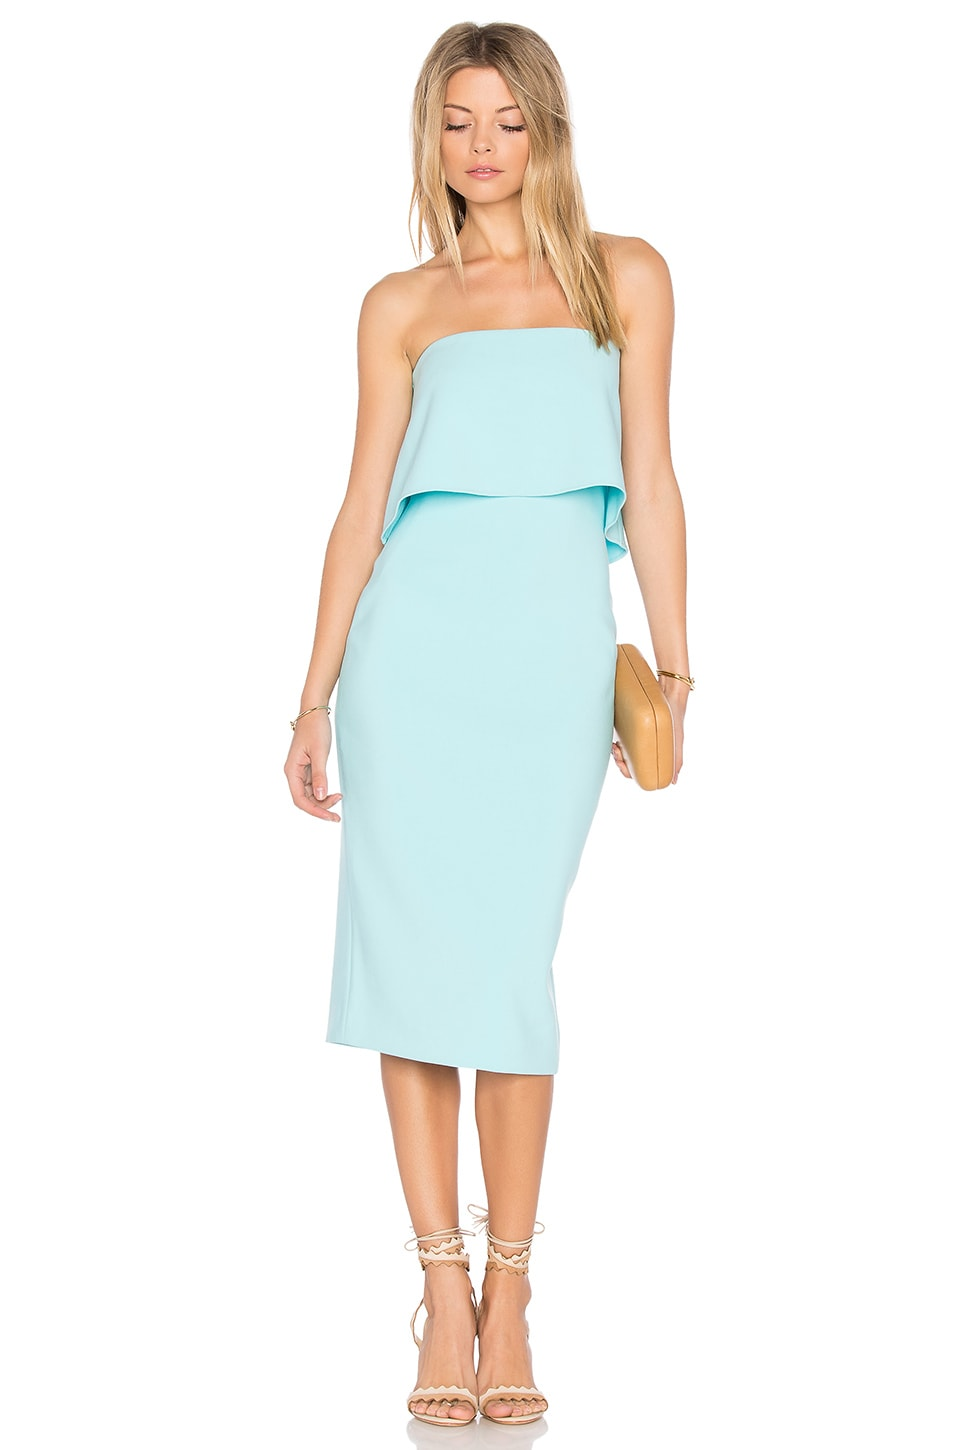 LIKELY Driggs Dress in Seafoam